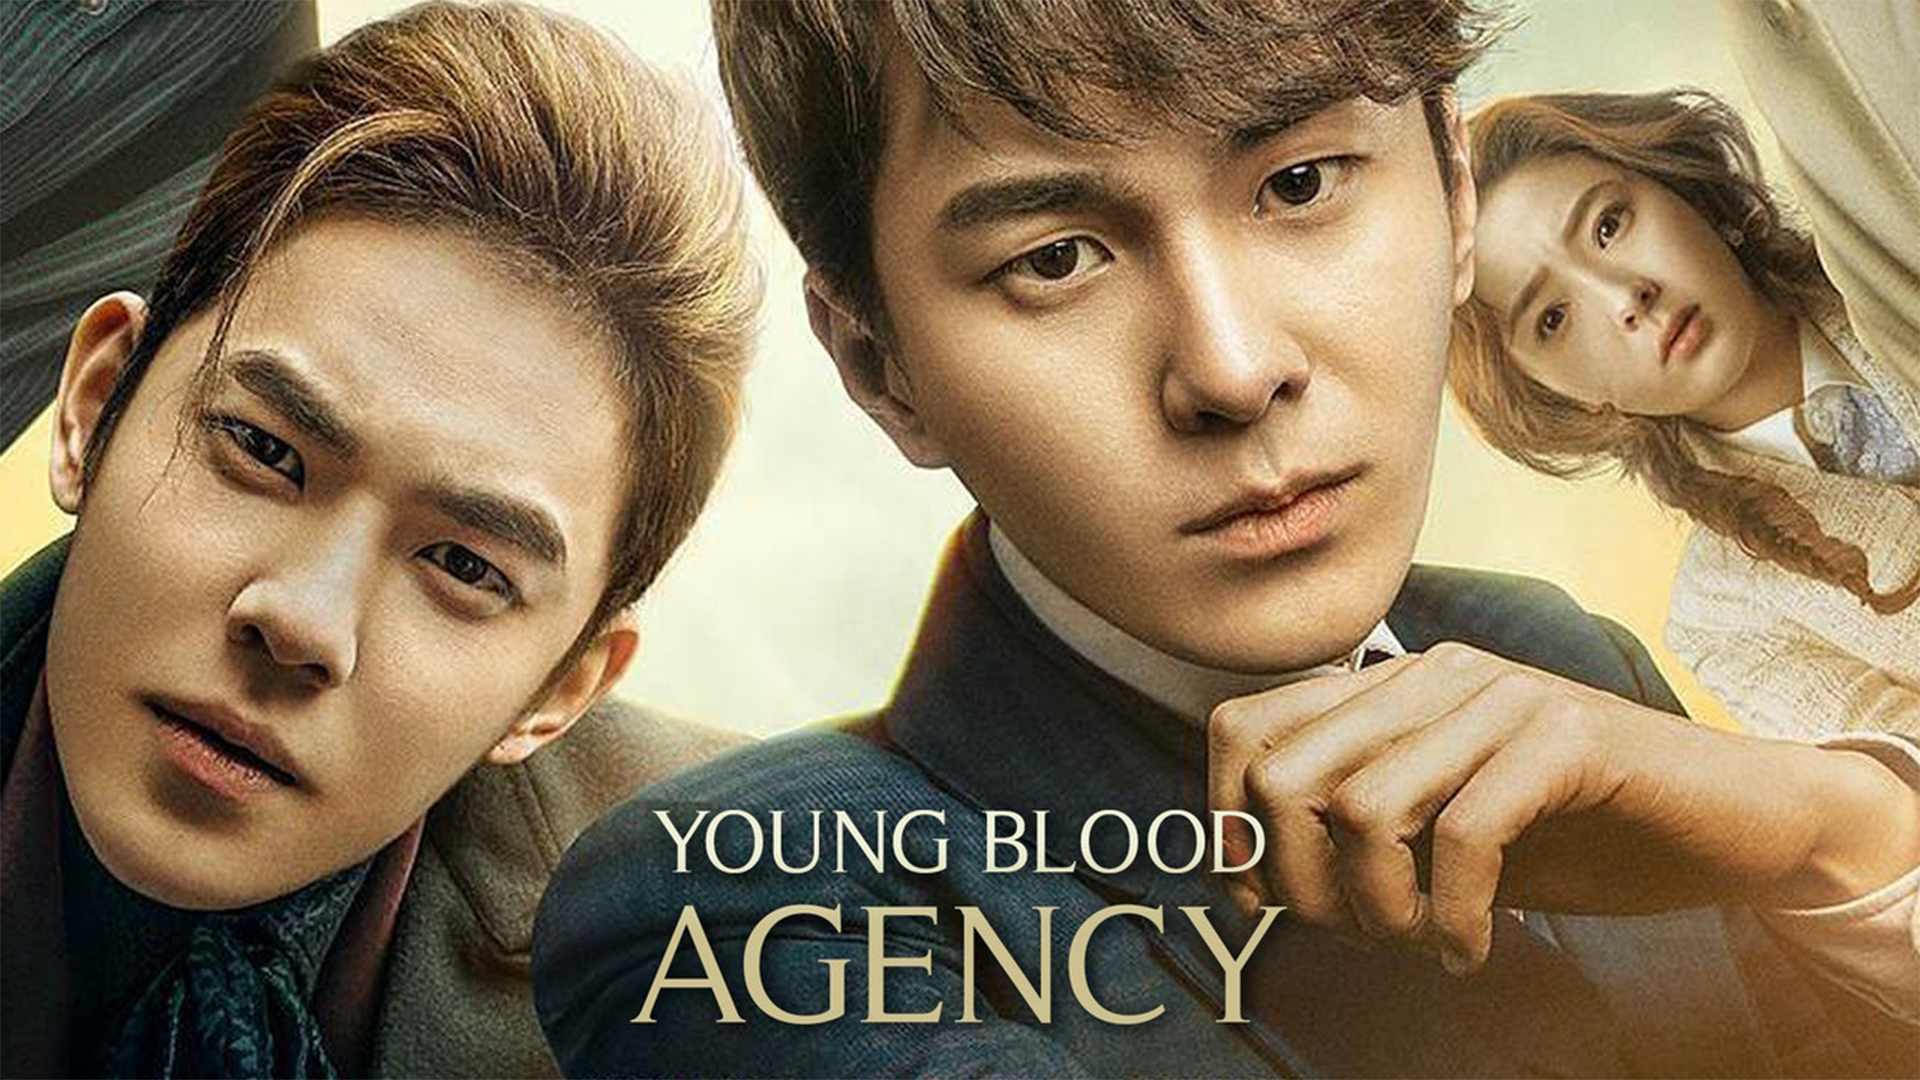 Young Blood Agency - Season 1